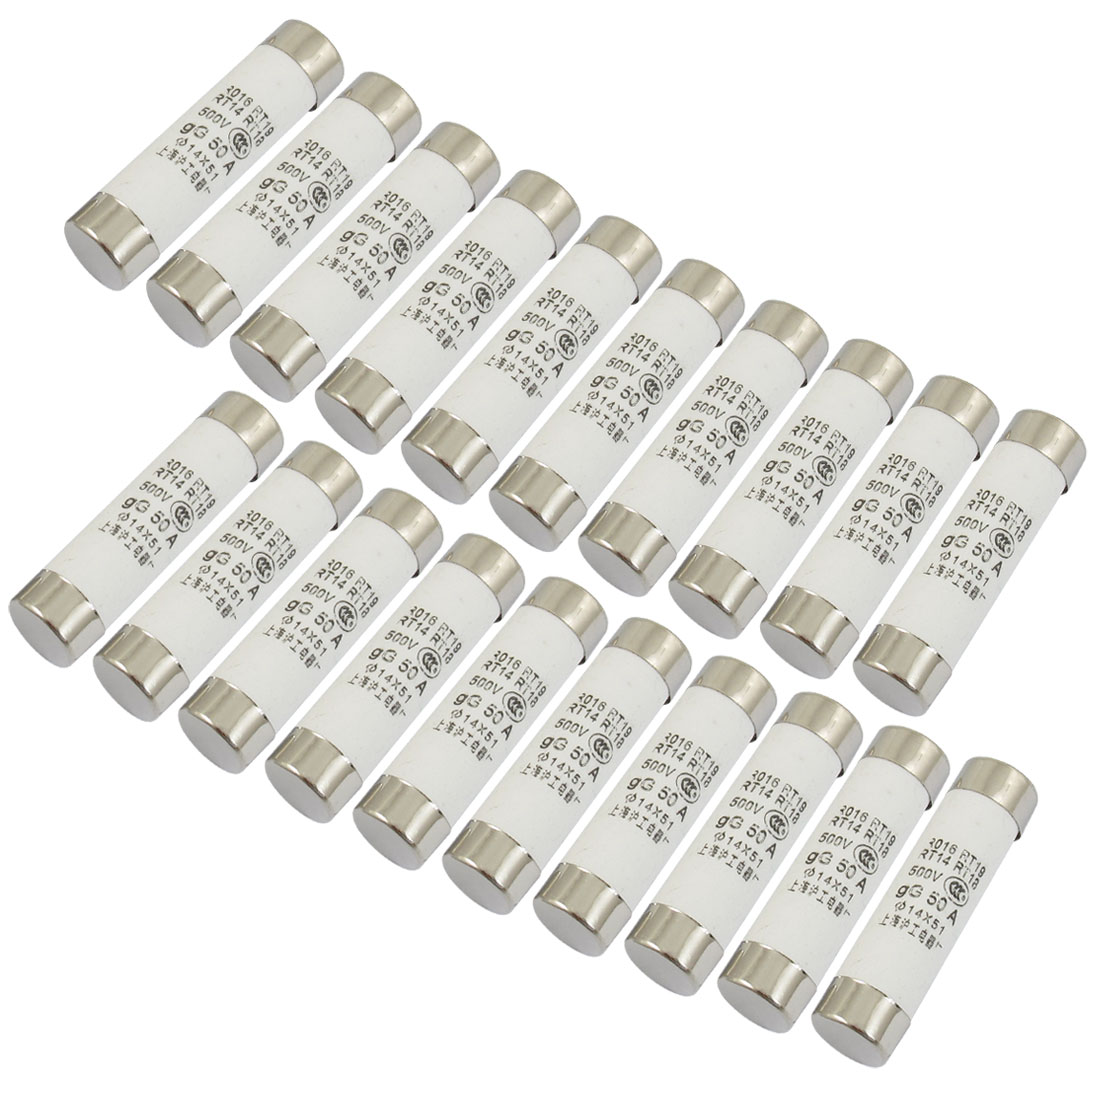 20 Pcs RO16 Series 500V 50A Cylinder Cap Ceramic Fast Blow Fuse Links 14x51mm